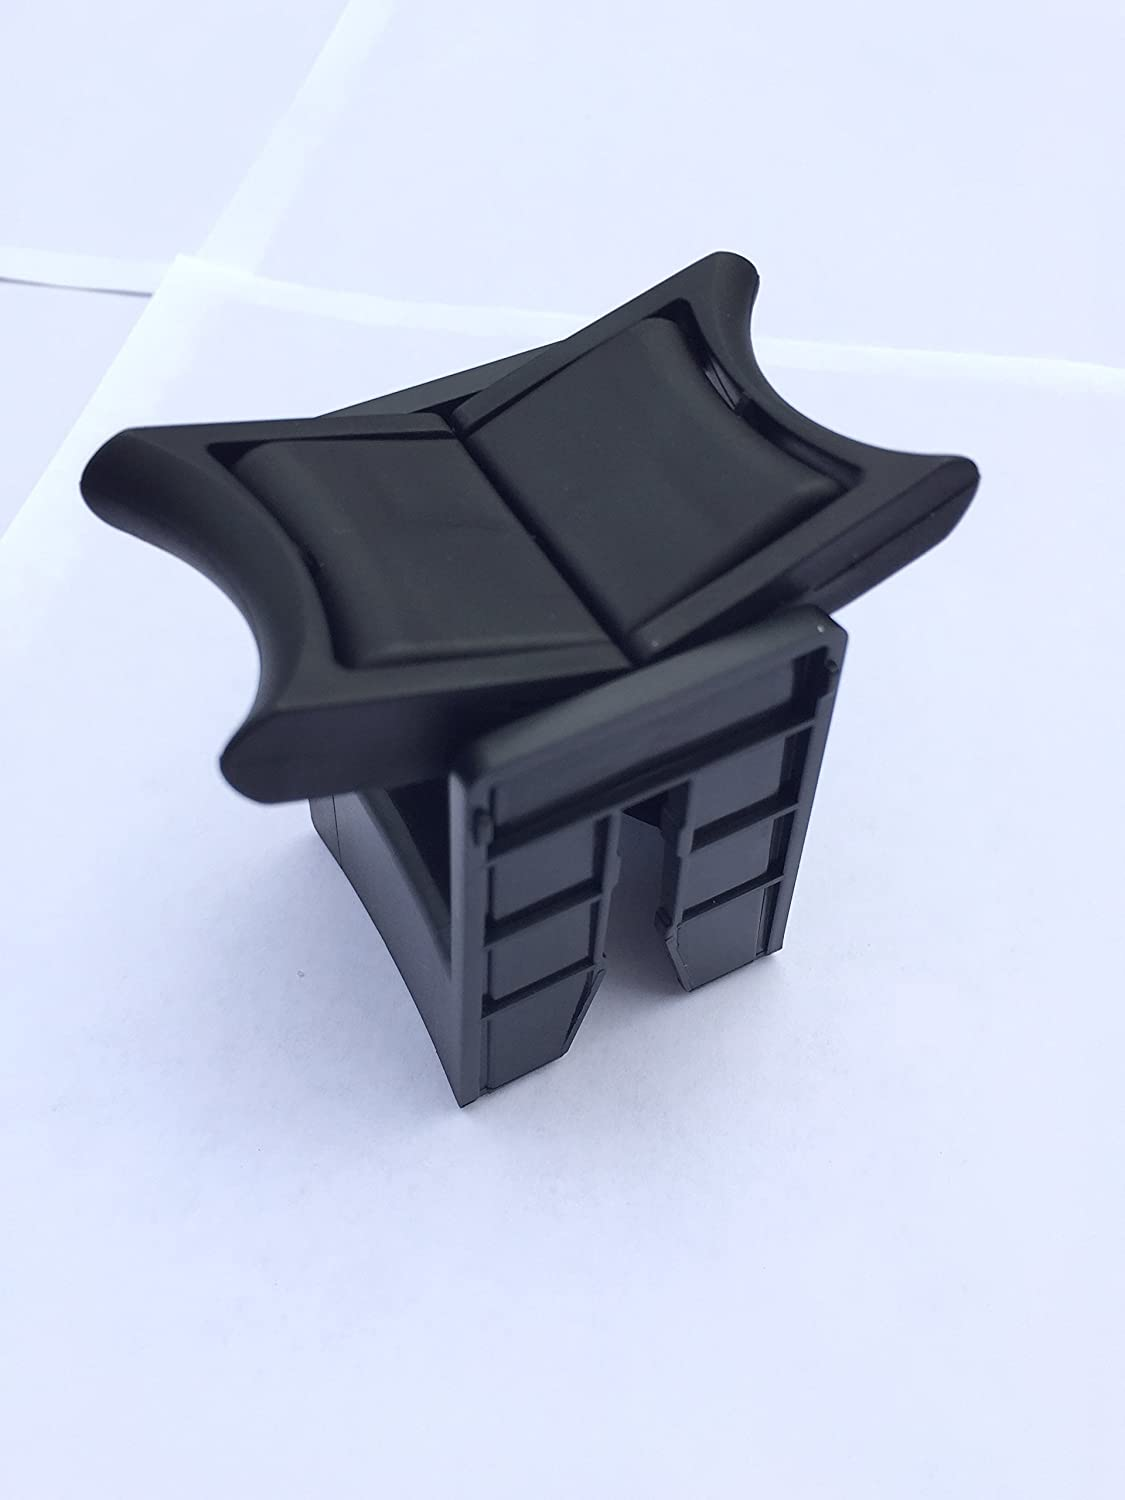 Cup Holder insert For Toyota Camry Fits 2012 2013 2014 2015 2016 2017 NEW Trunknets Inc 4350405974